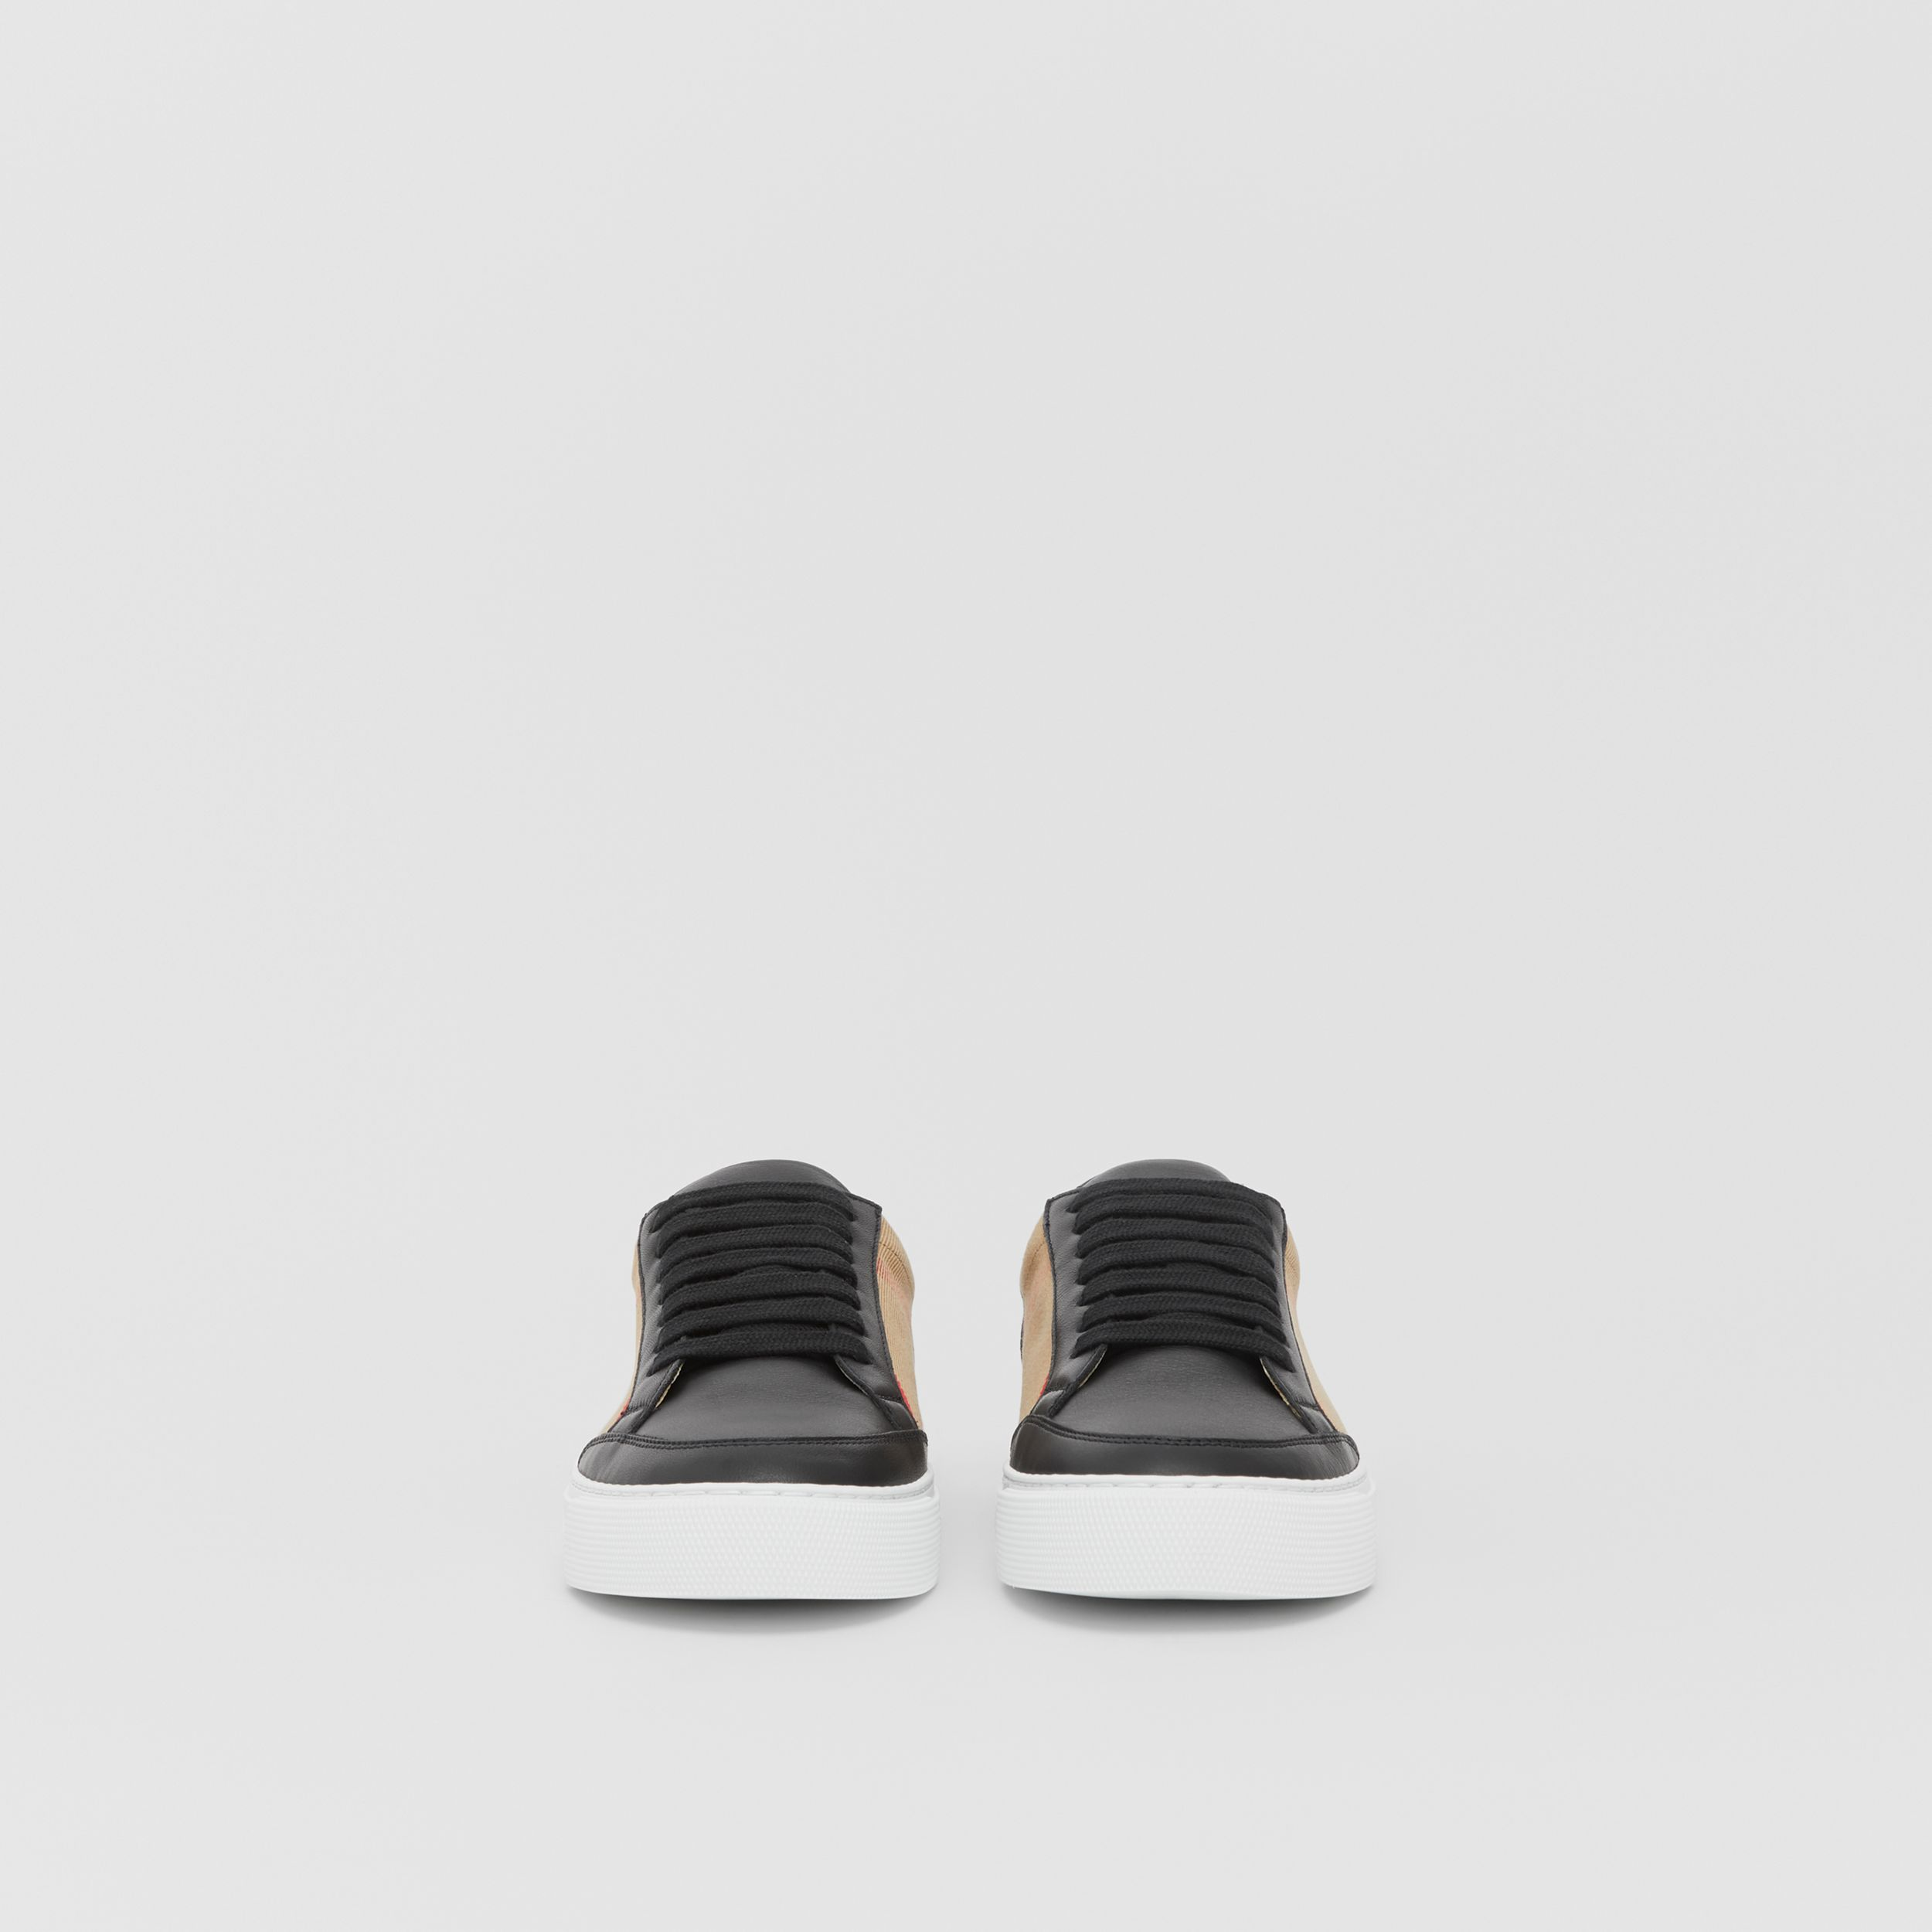 House Check and Leather Sneakers in Black - Women | Burberry Canada - 4